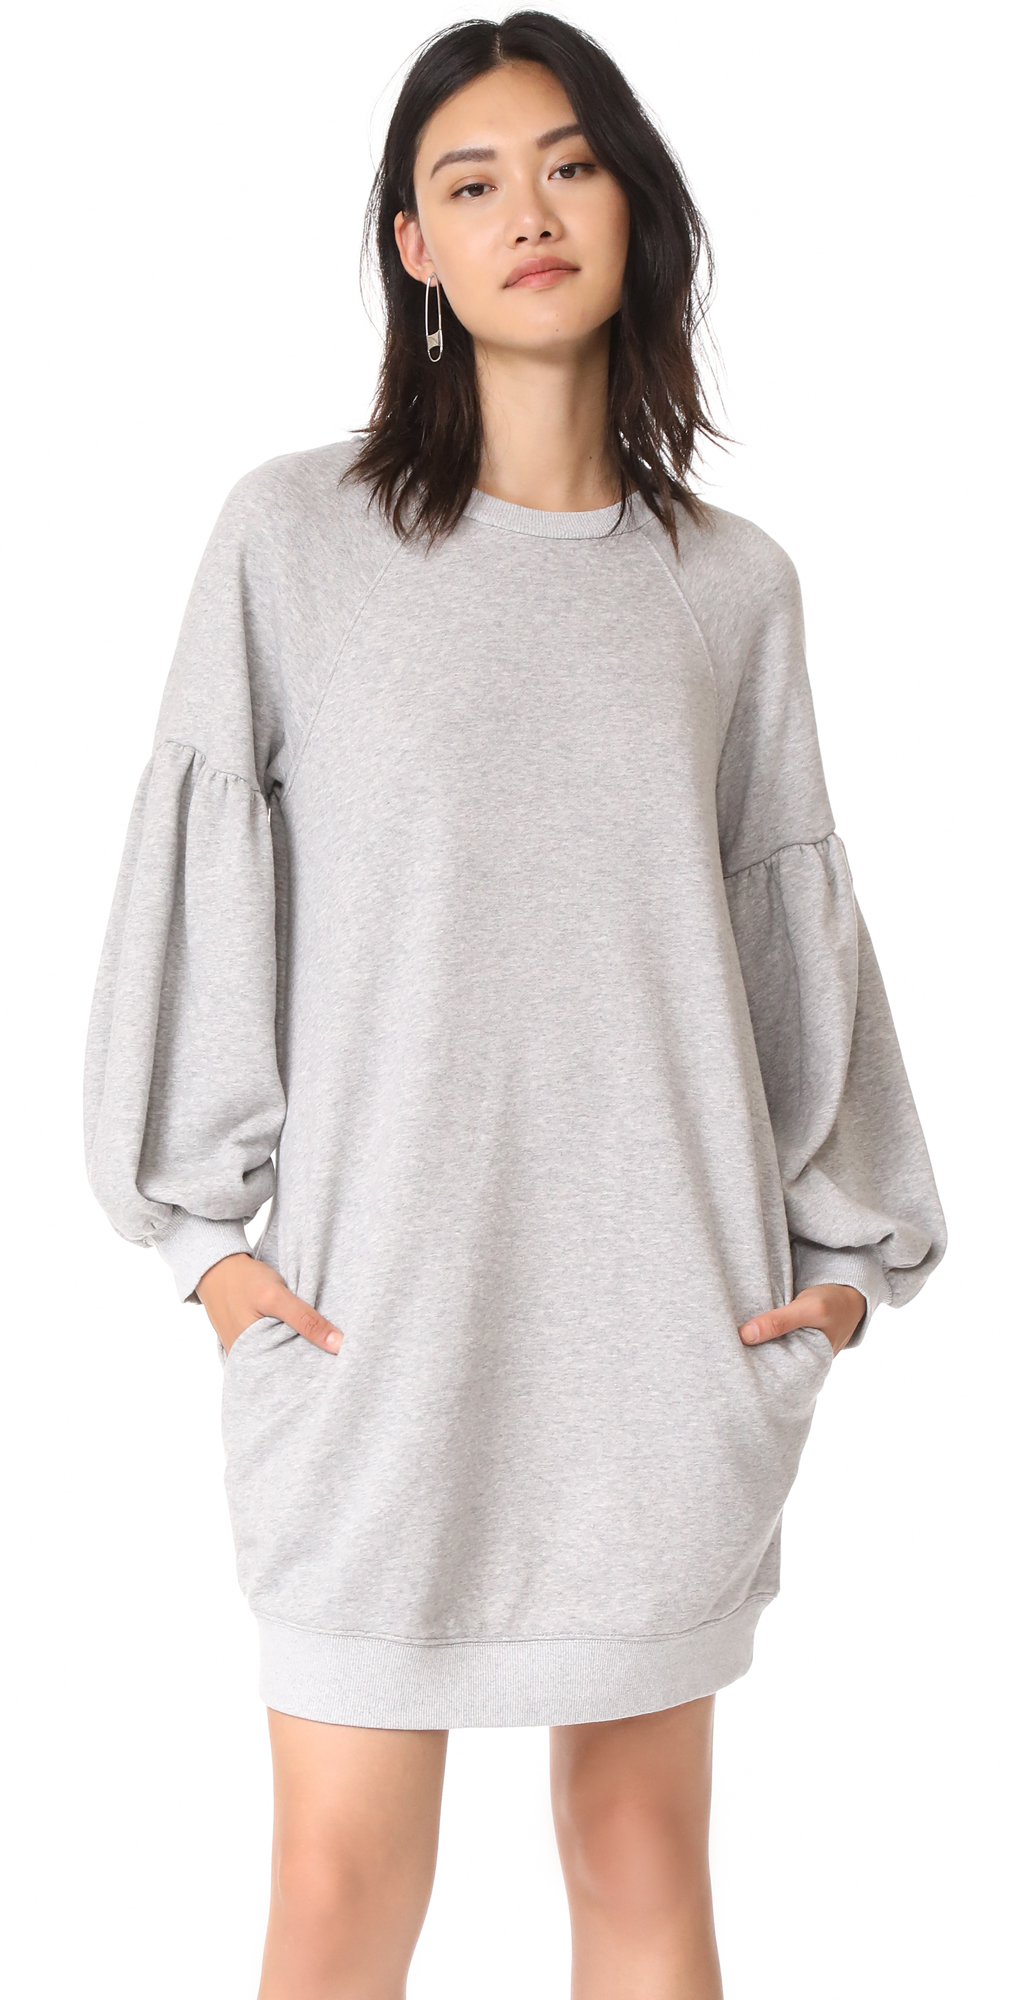 Sweatshirt Dress J.O.A.